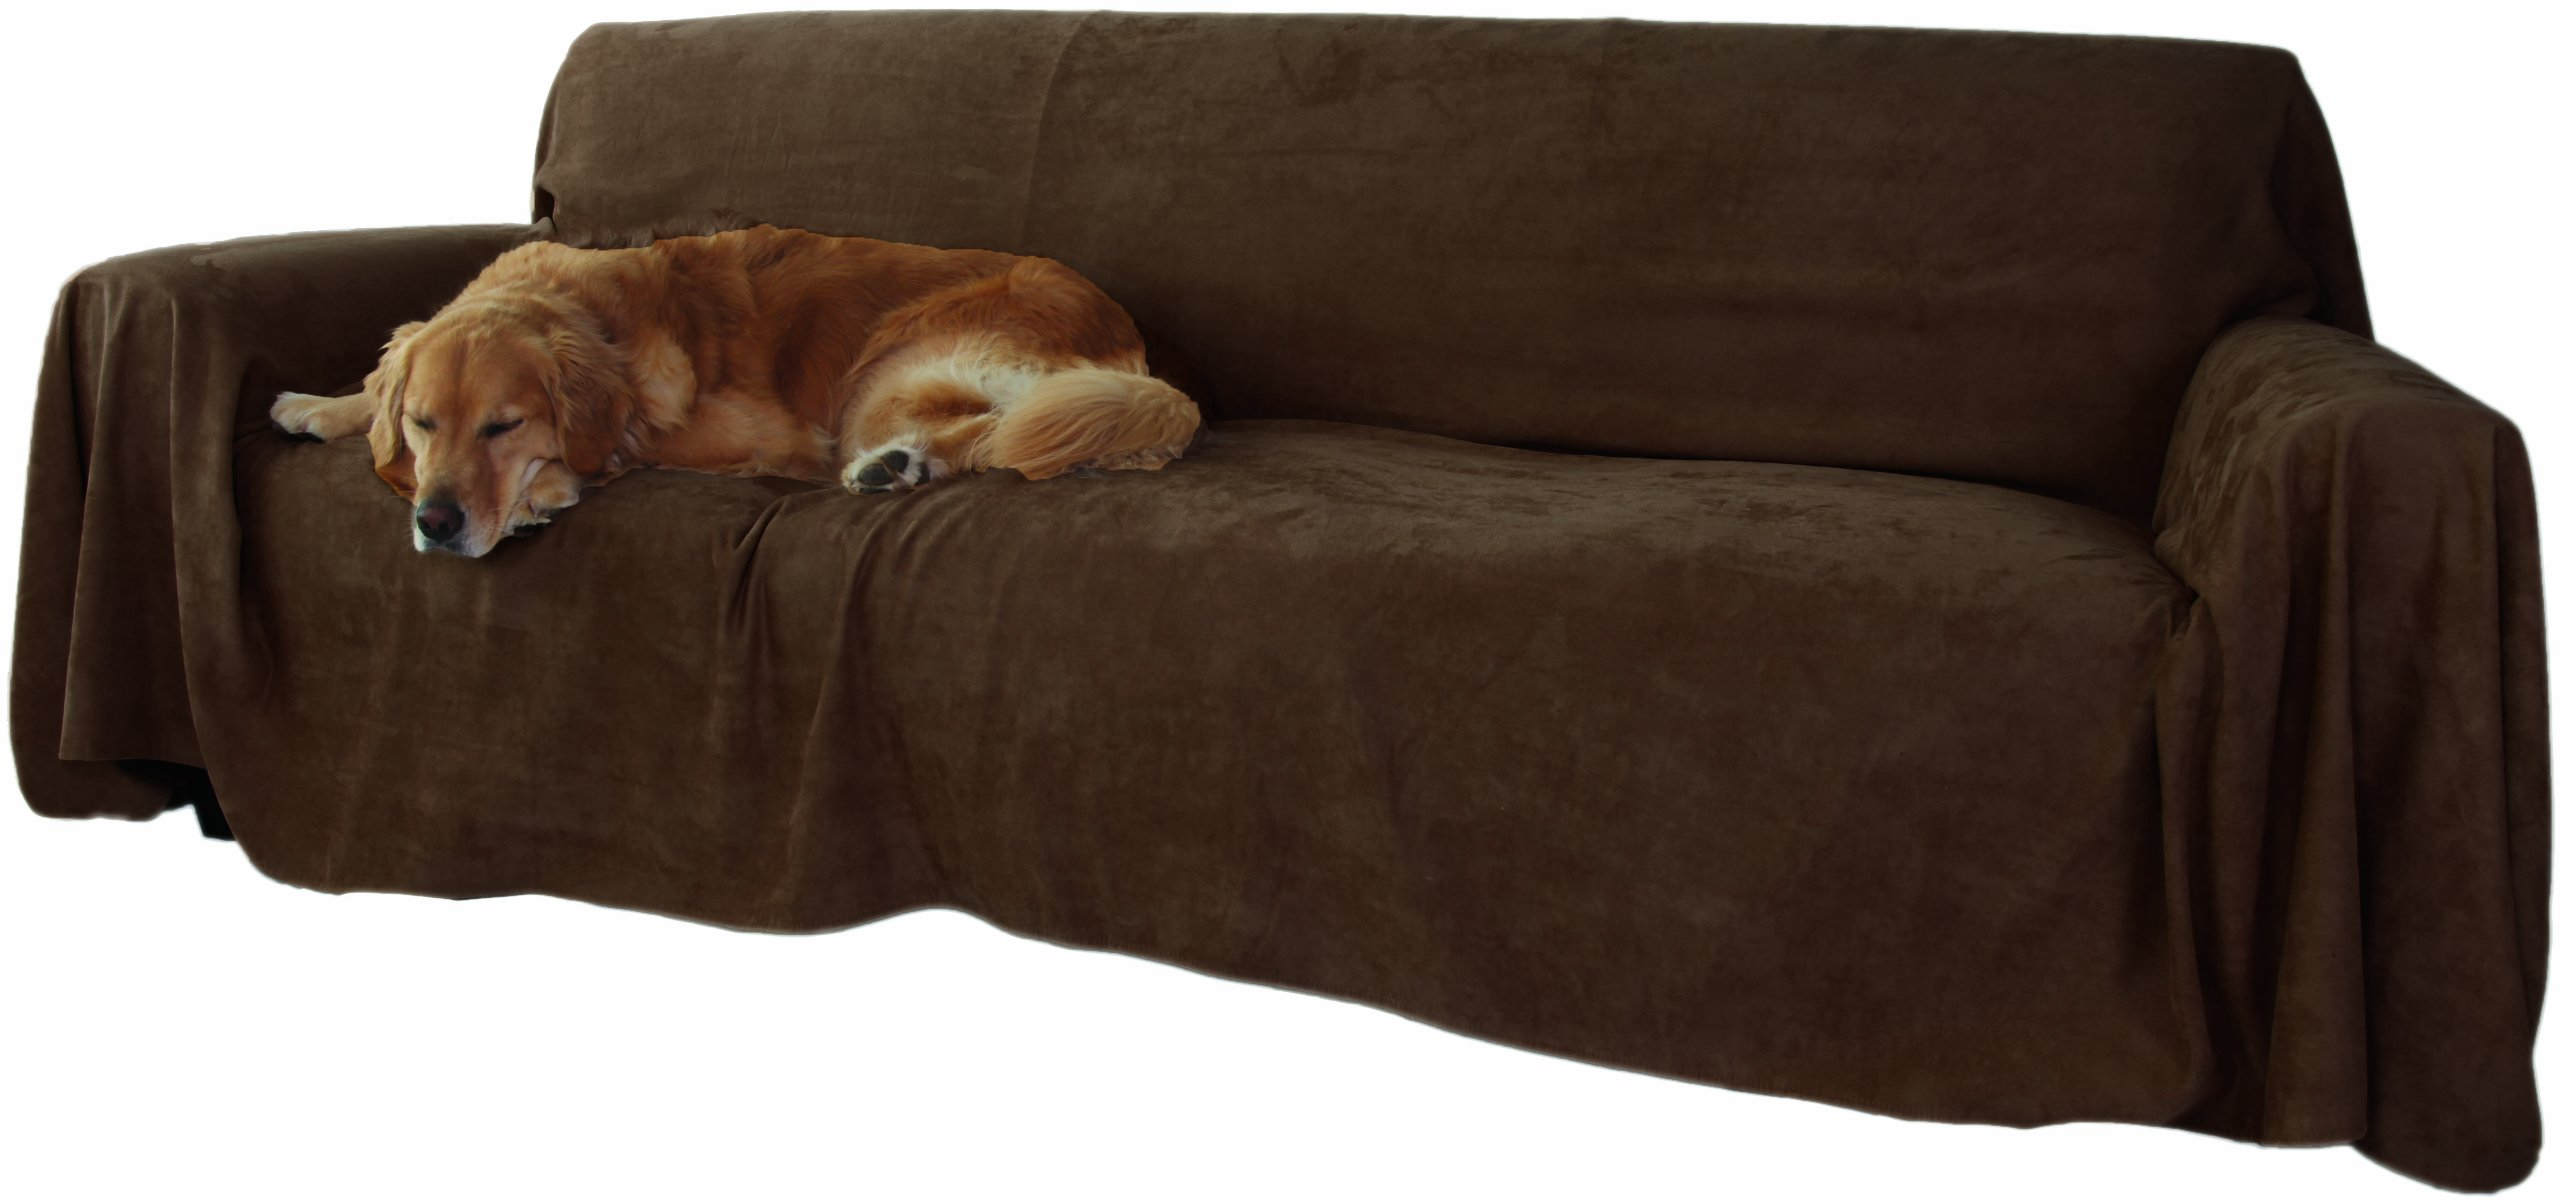 Floppy Ears Design Simple Faux Suede Couch Cover Protector, Chocolate, 70'' x 170'' L